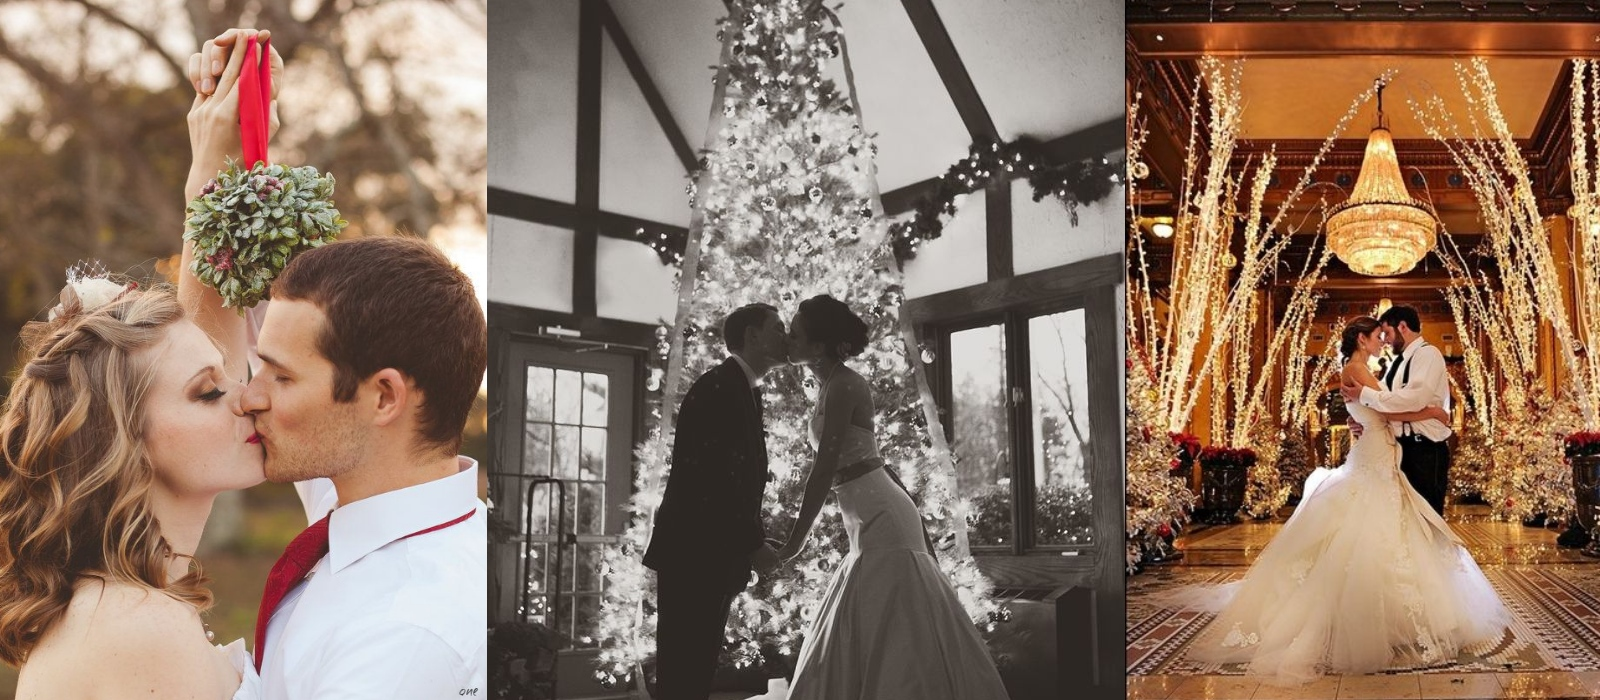 Wedding Gift For Friend Abroad : Gift Voucher Christmas Wedding Weddings on the French Riviera ...